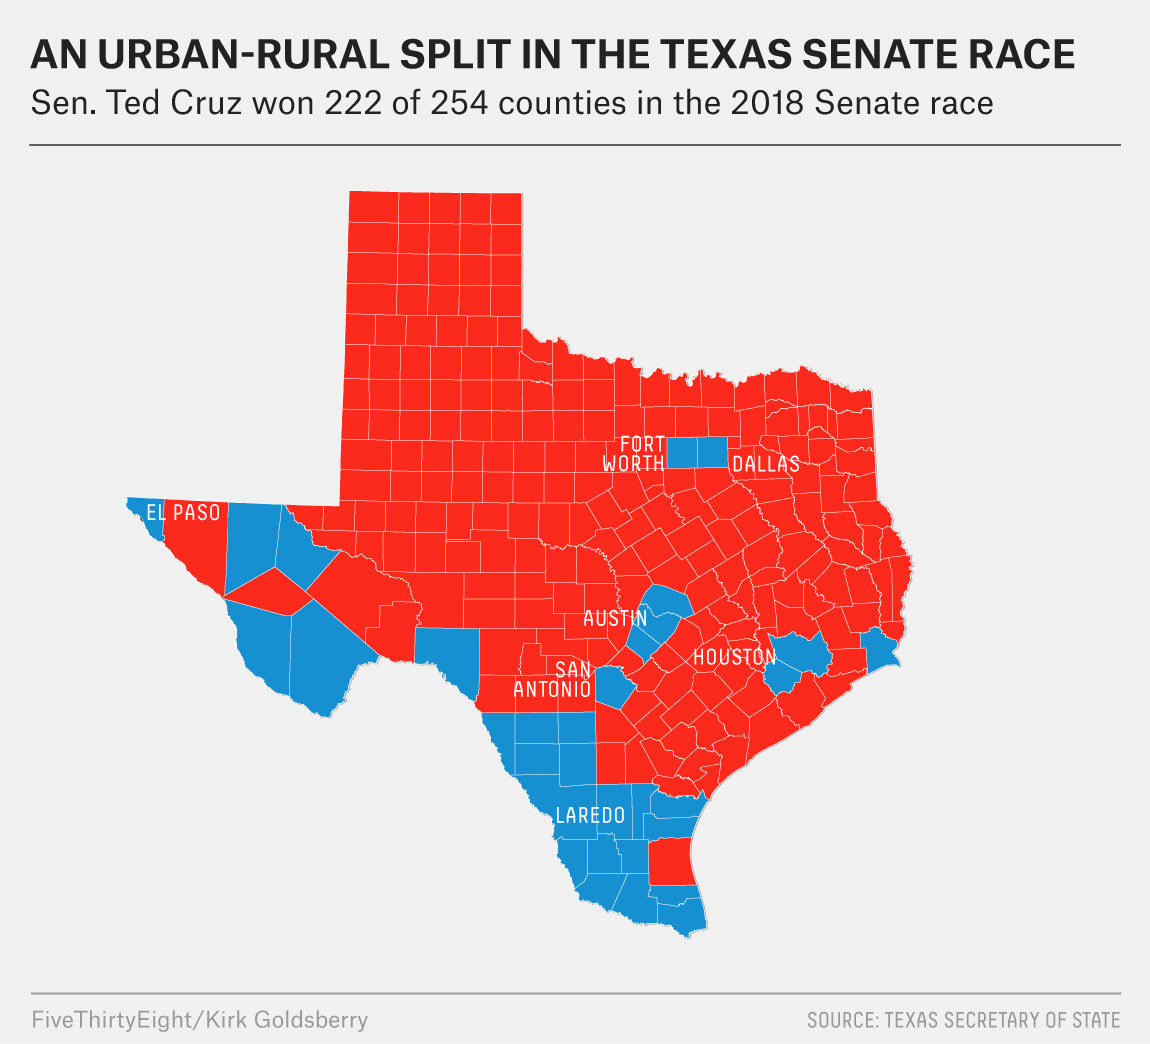 Map Of Texas San Antonio.What Really Happened In Texas Fivethirtyeight